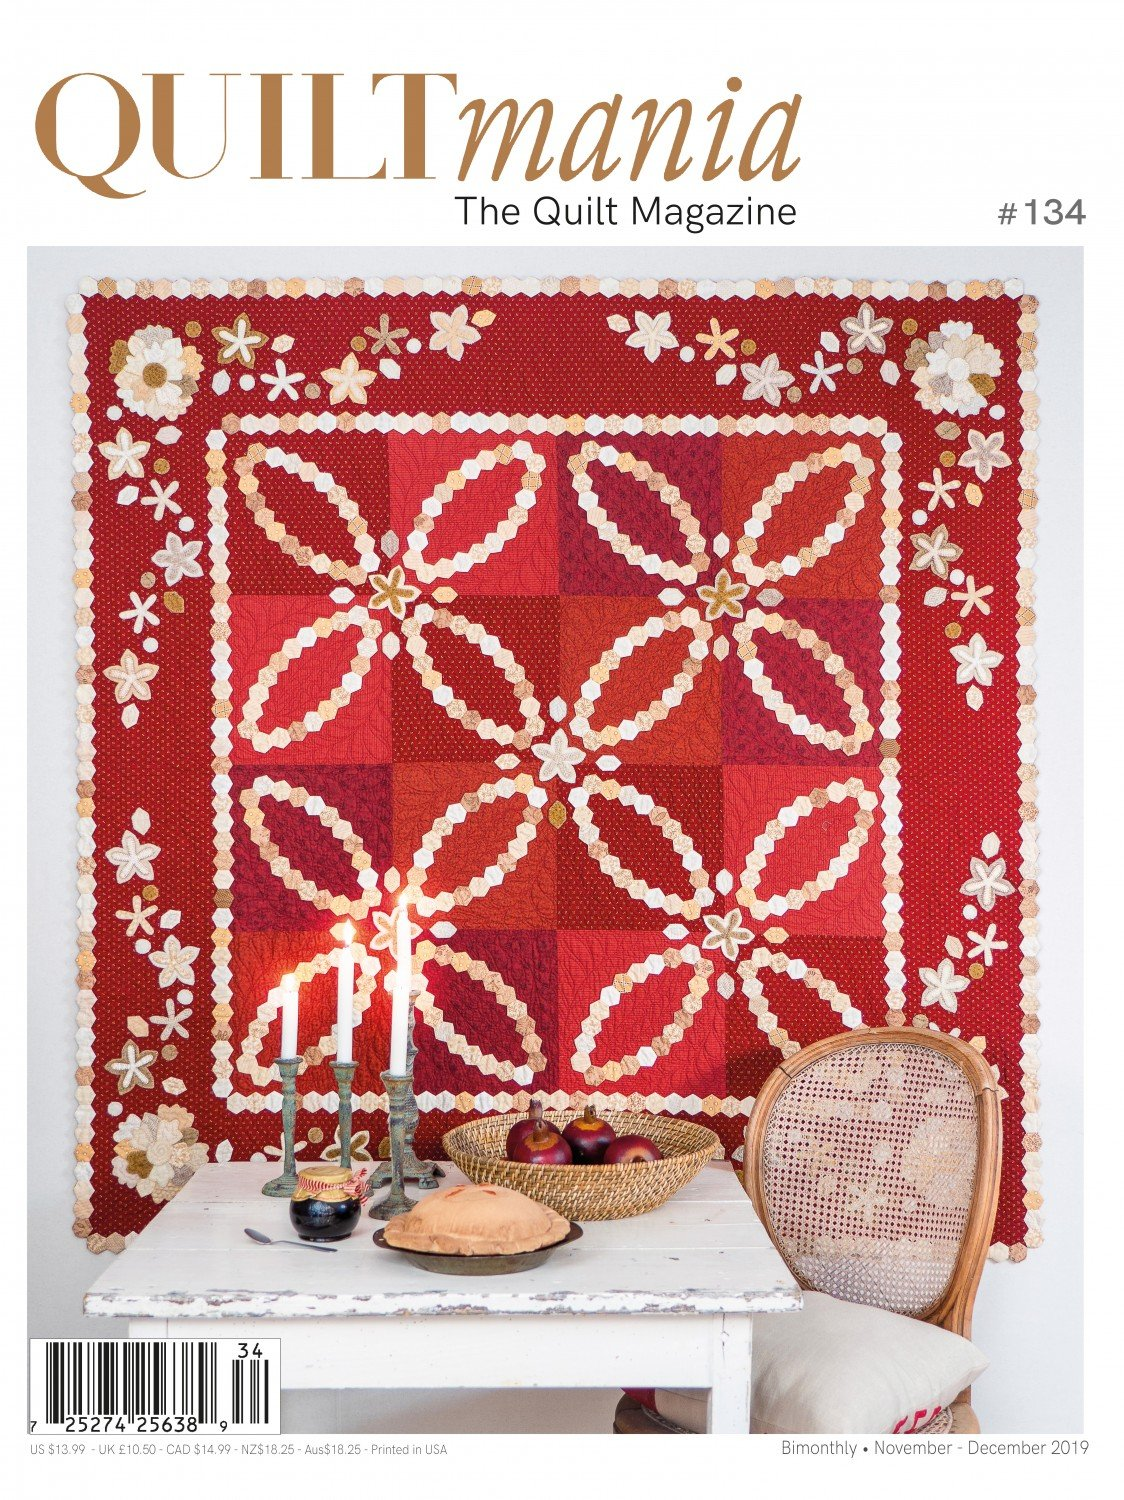 Quiltmania Magazine 134 Nov/Dec 2019